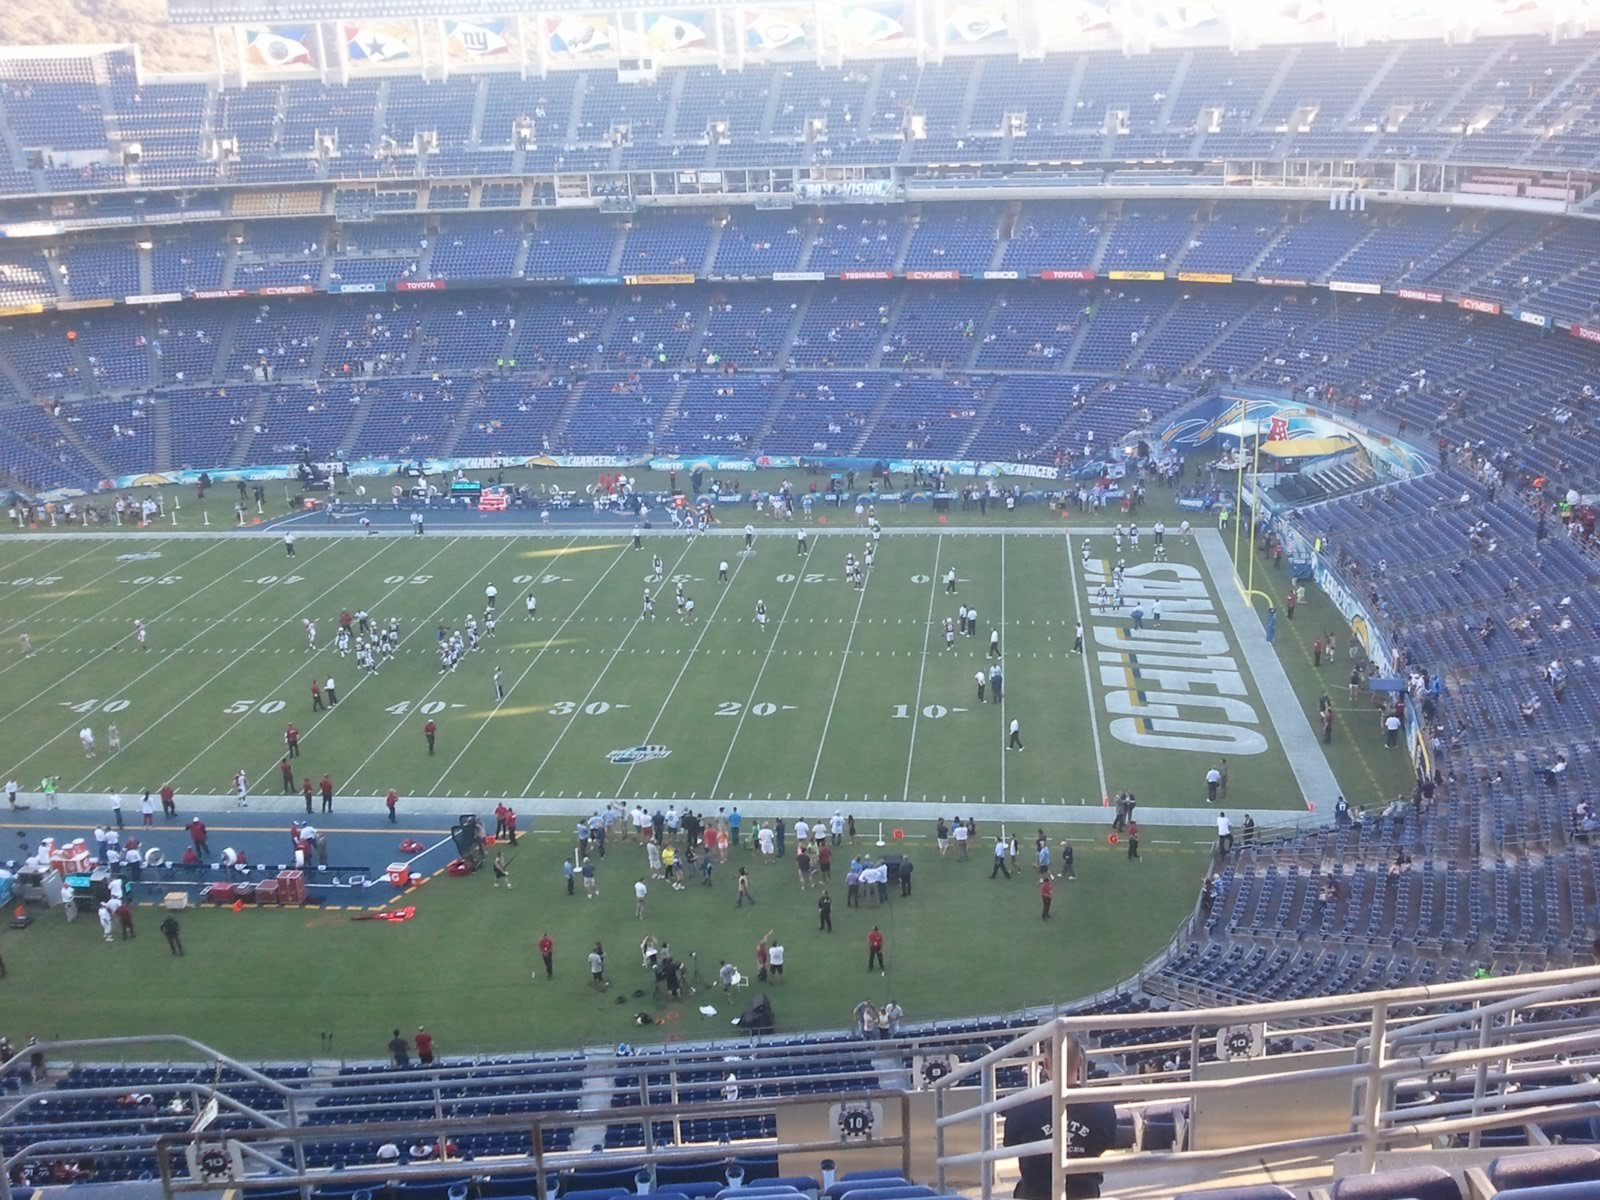 Seat View for Qualcomm Stadium View Level 10V, Row 13, Seat 6